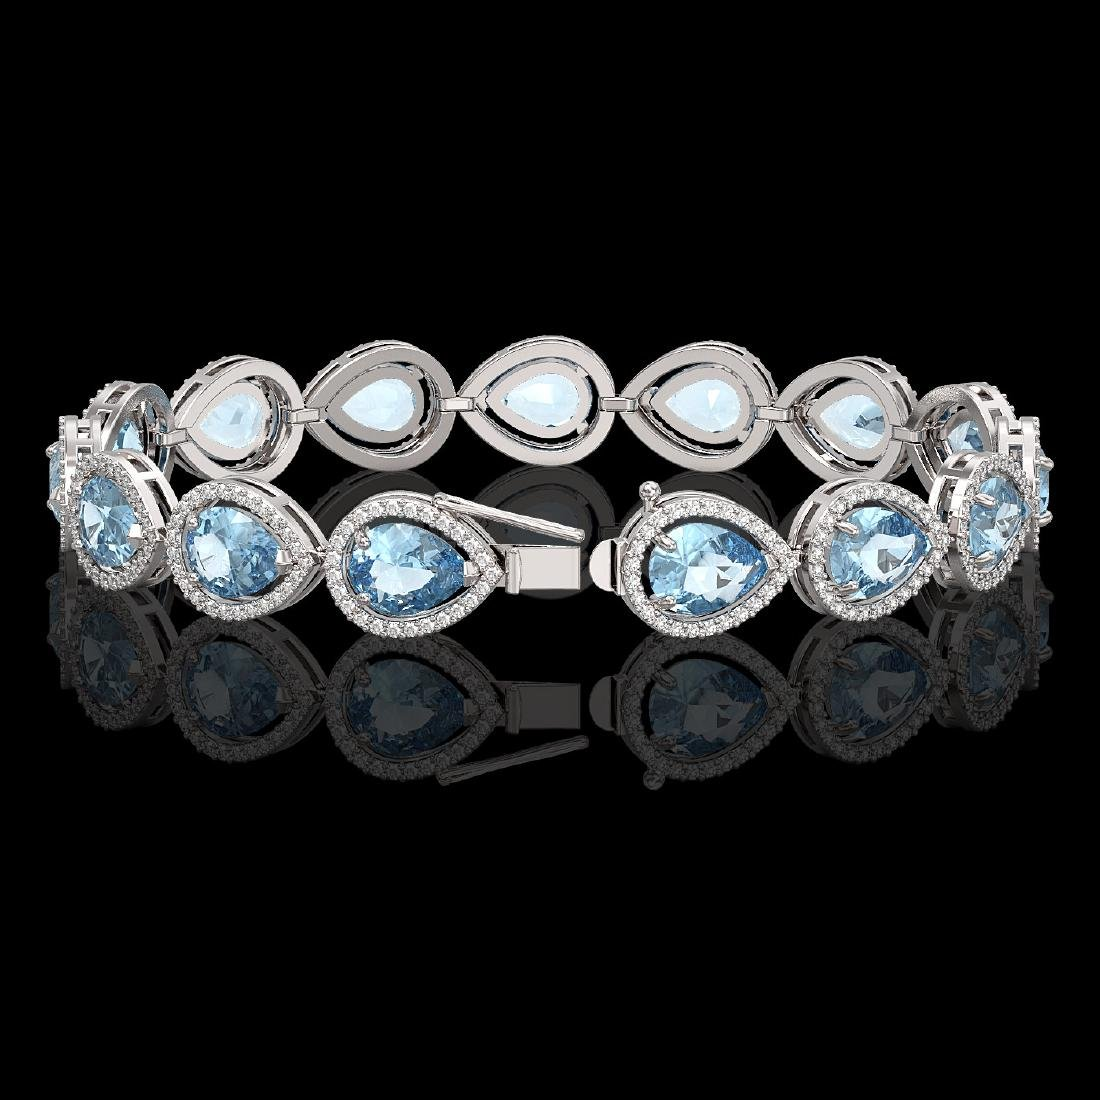 19.85 CTW Aquamarine & Diamond Halo Bracelet 10K White - 2